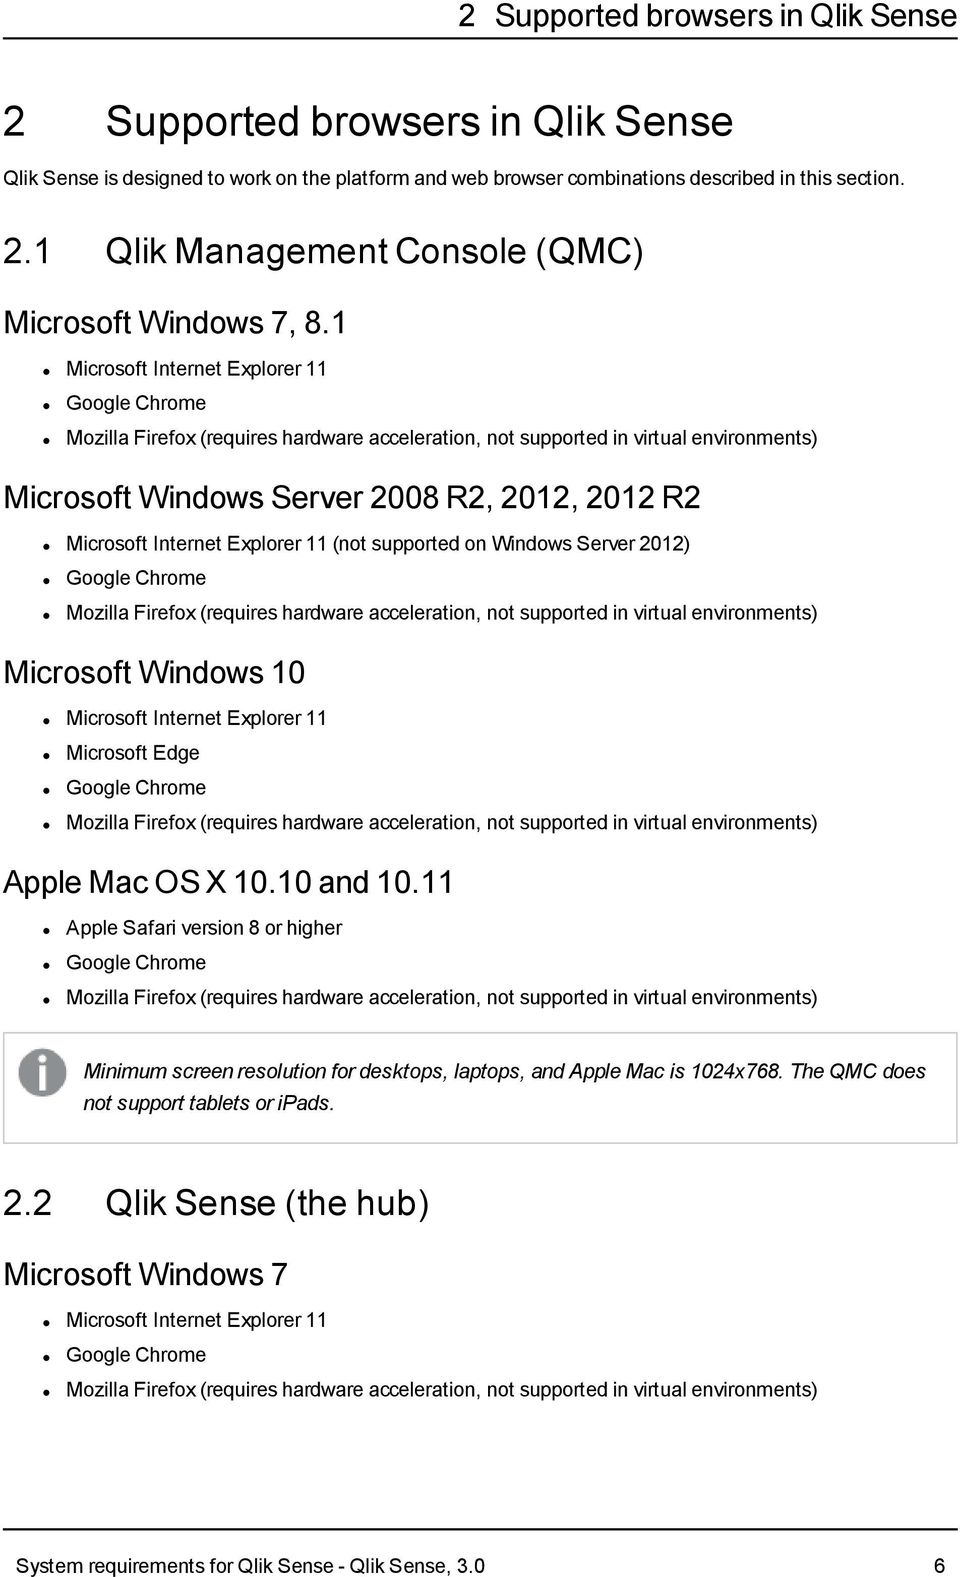 1 Microsoft Windows Server 2008 R2, 2012, 2012 R2 (not supported on Windows Server 2012) Microsoft Windows 10 Microsoft Edge Apple Mac OS X 10.10 and 10.